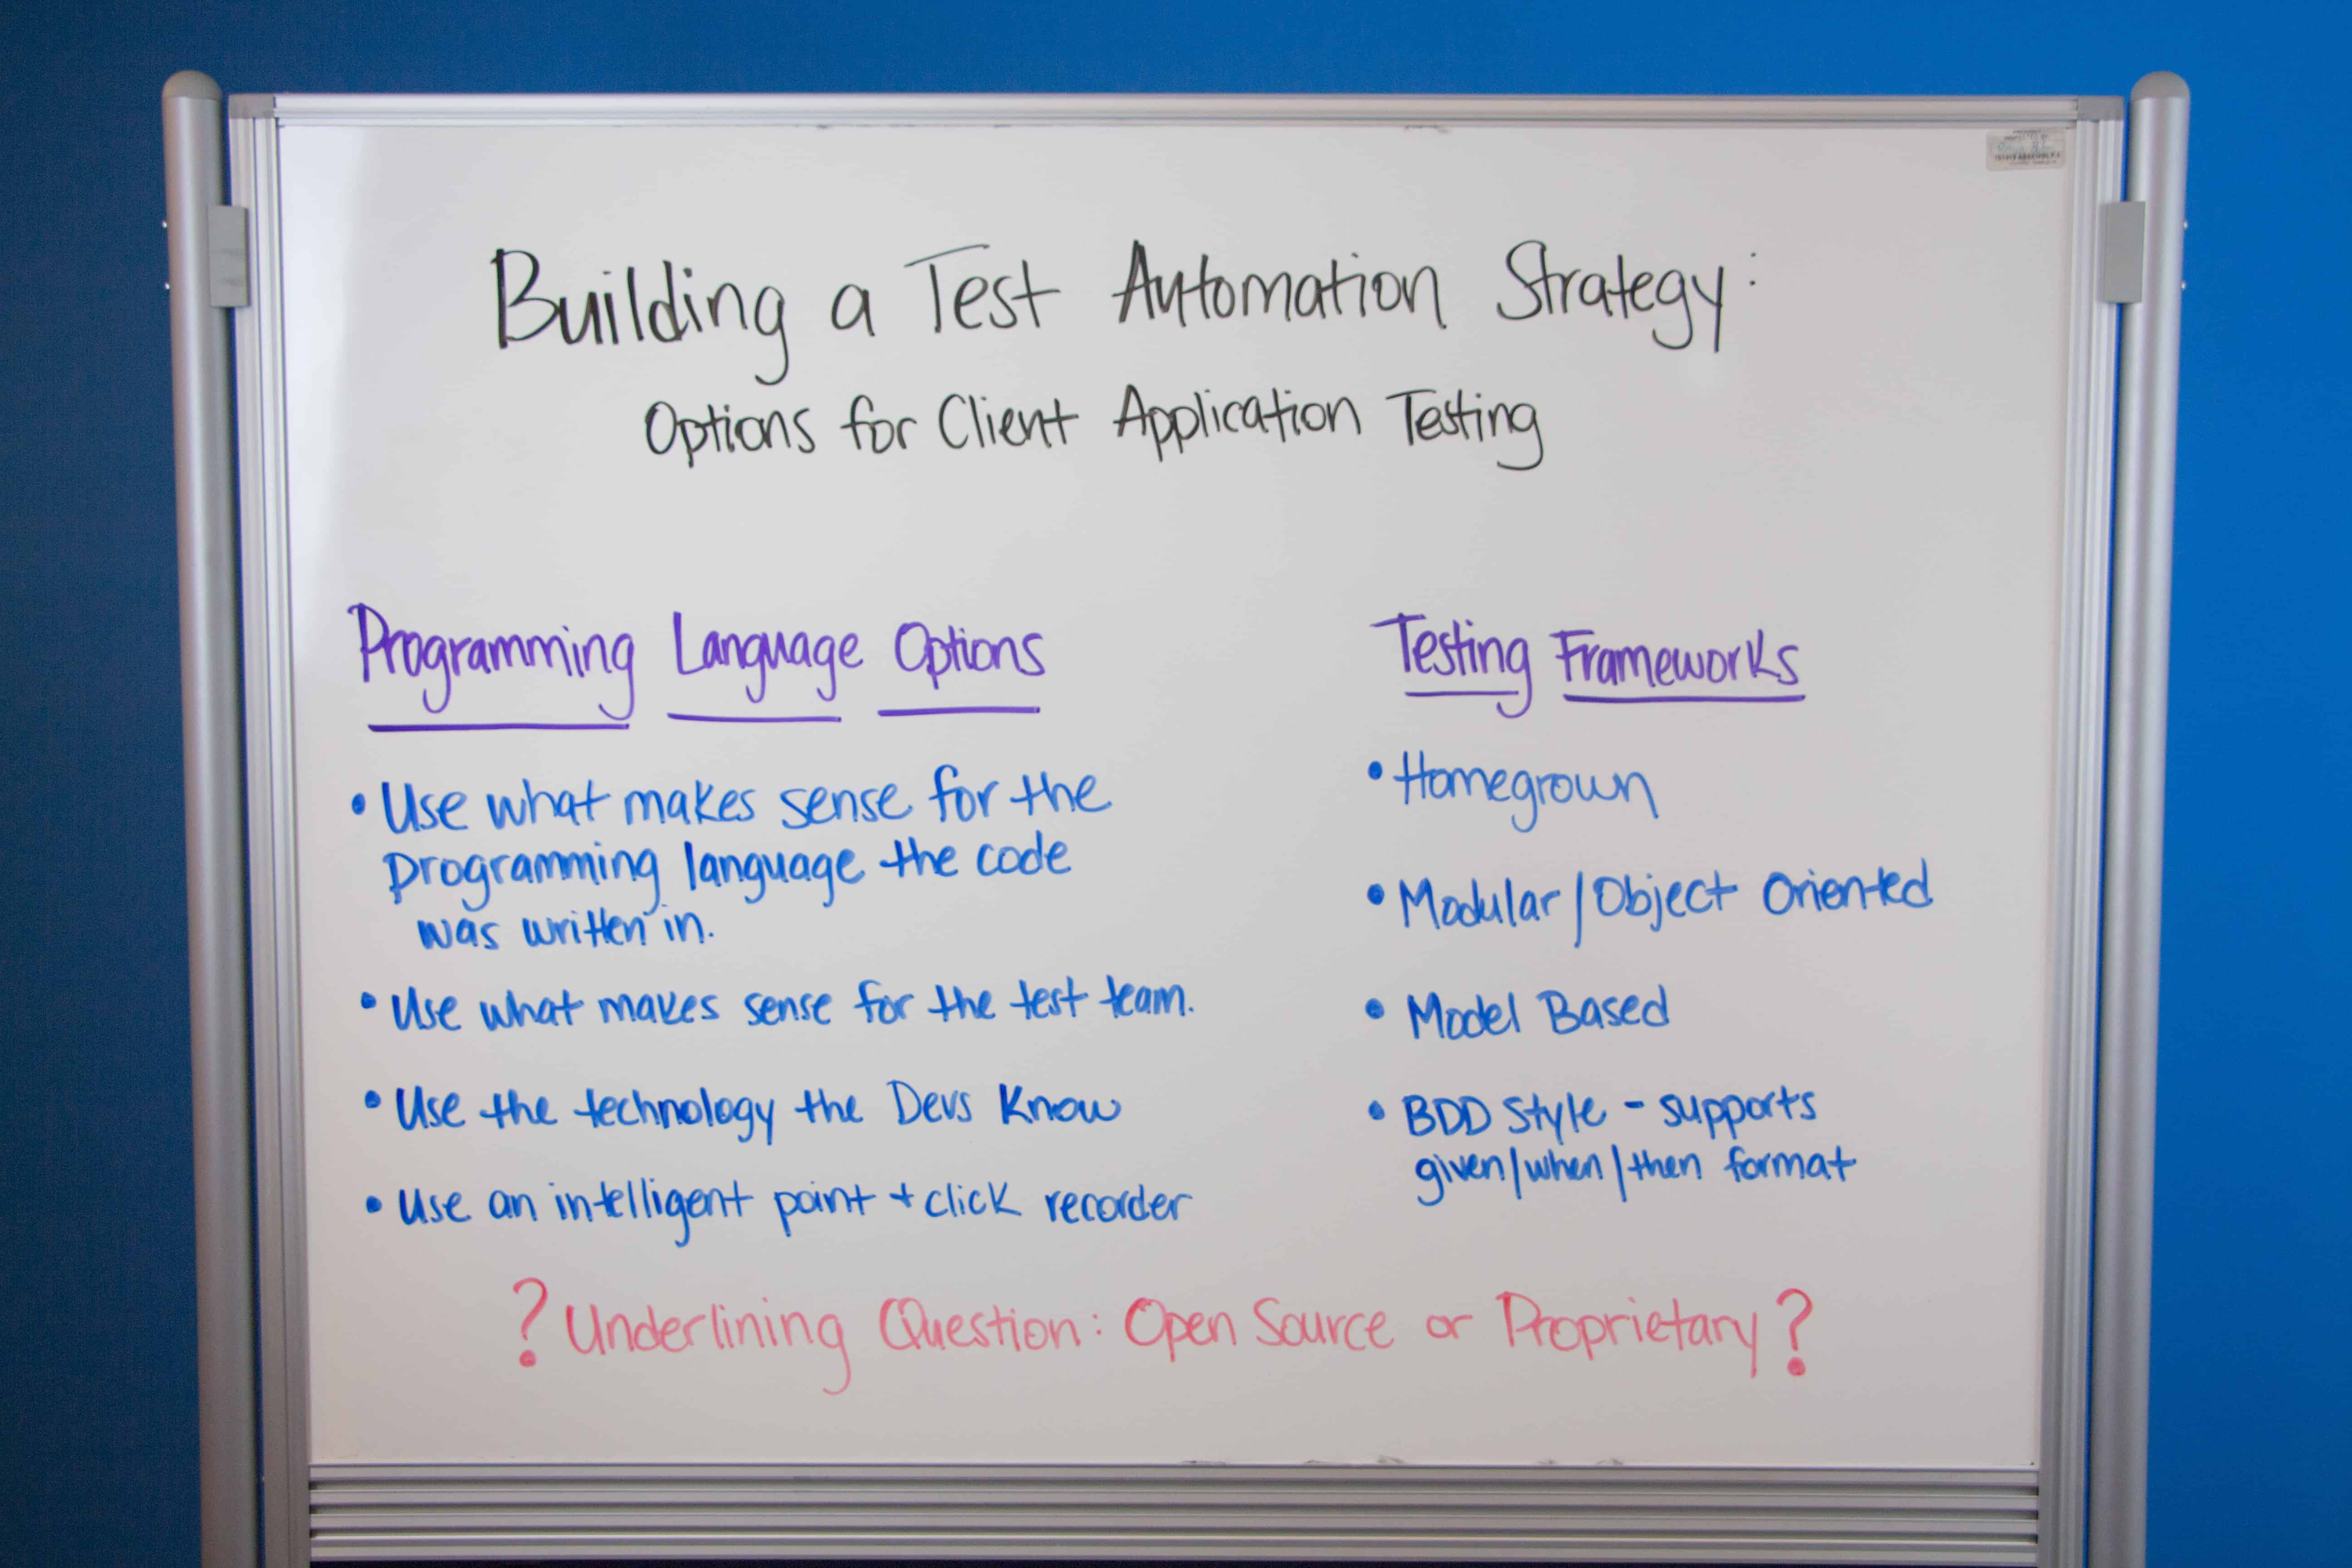 Client Application Testing - Whiteboard